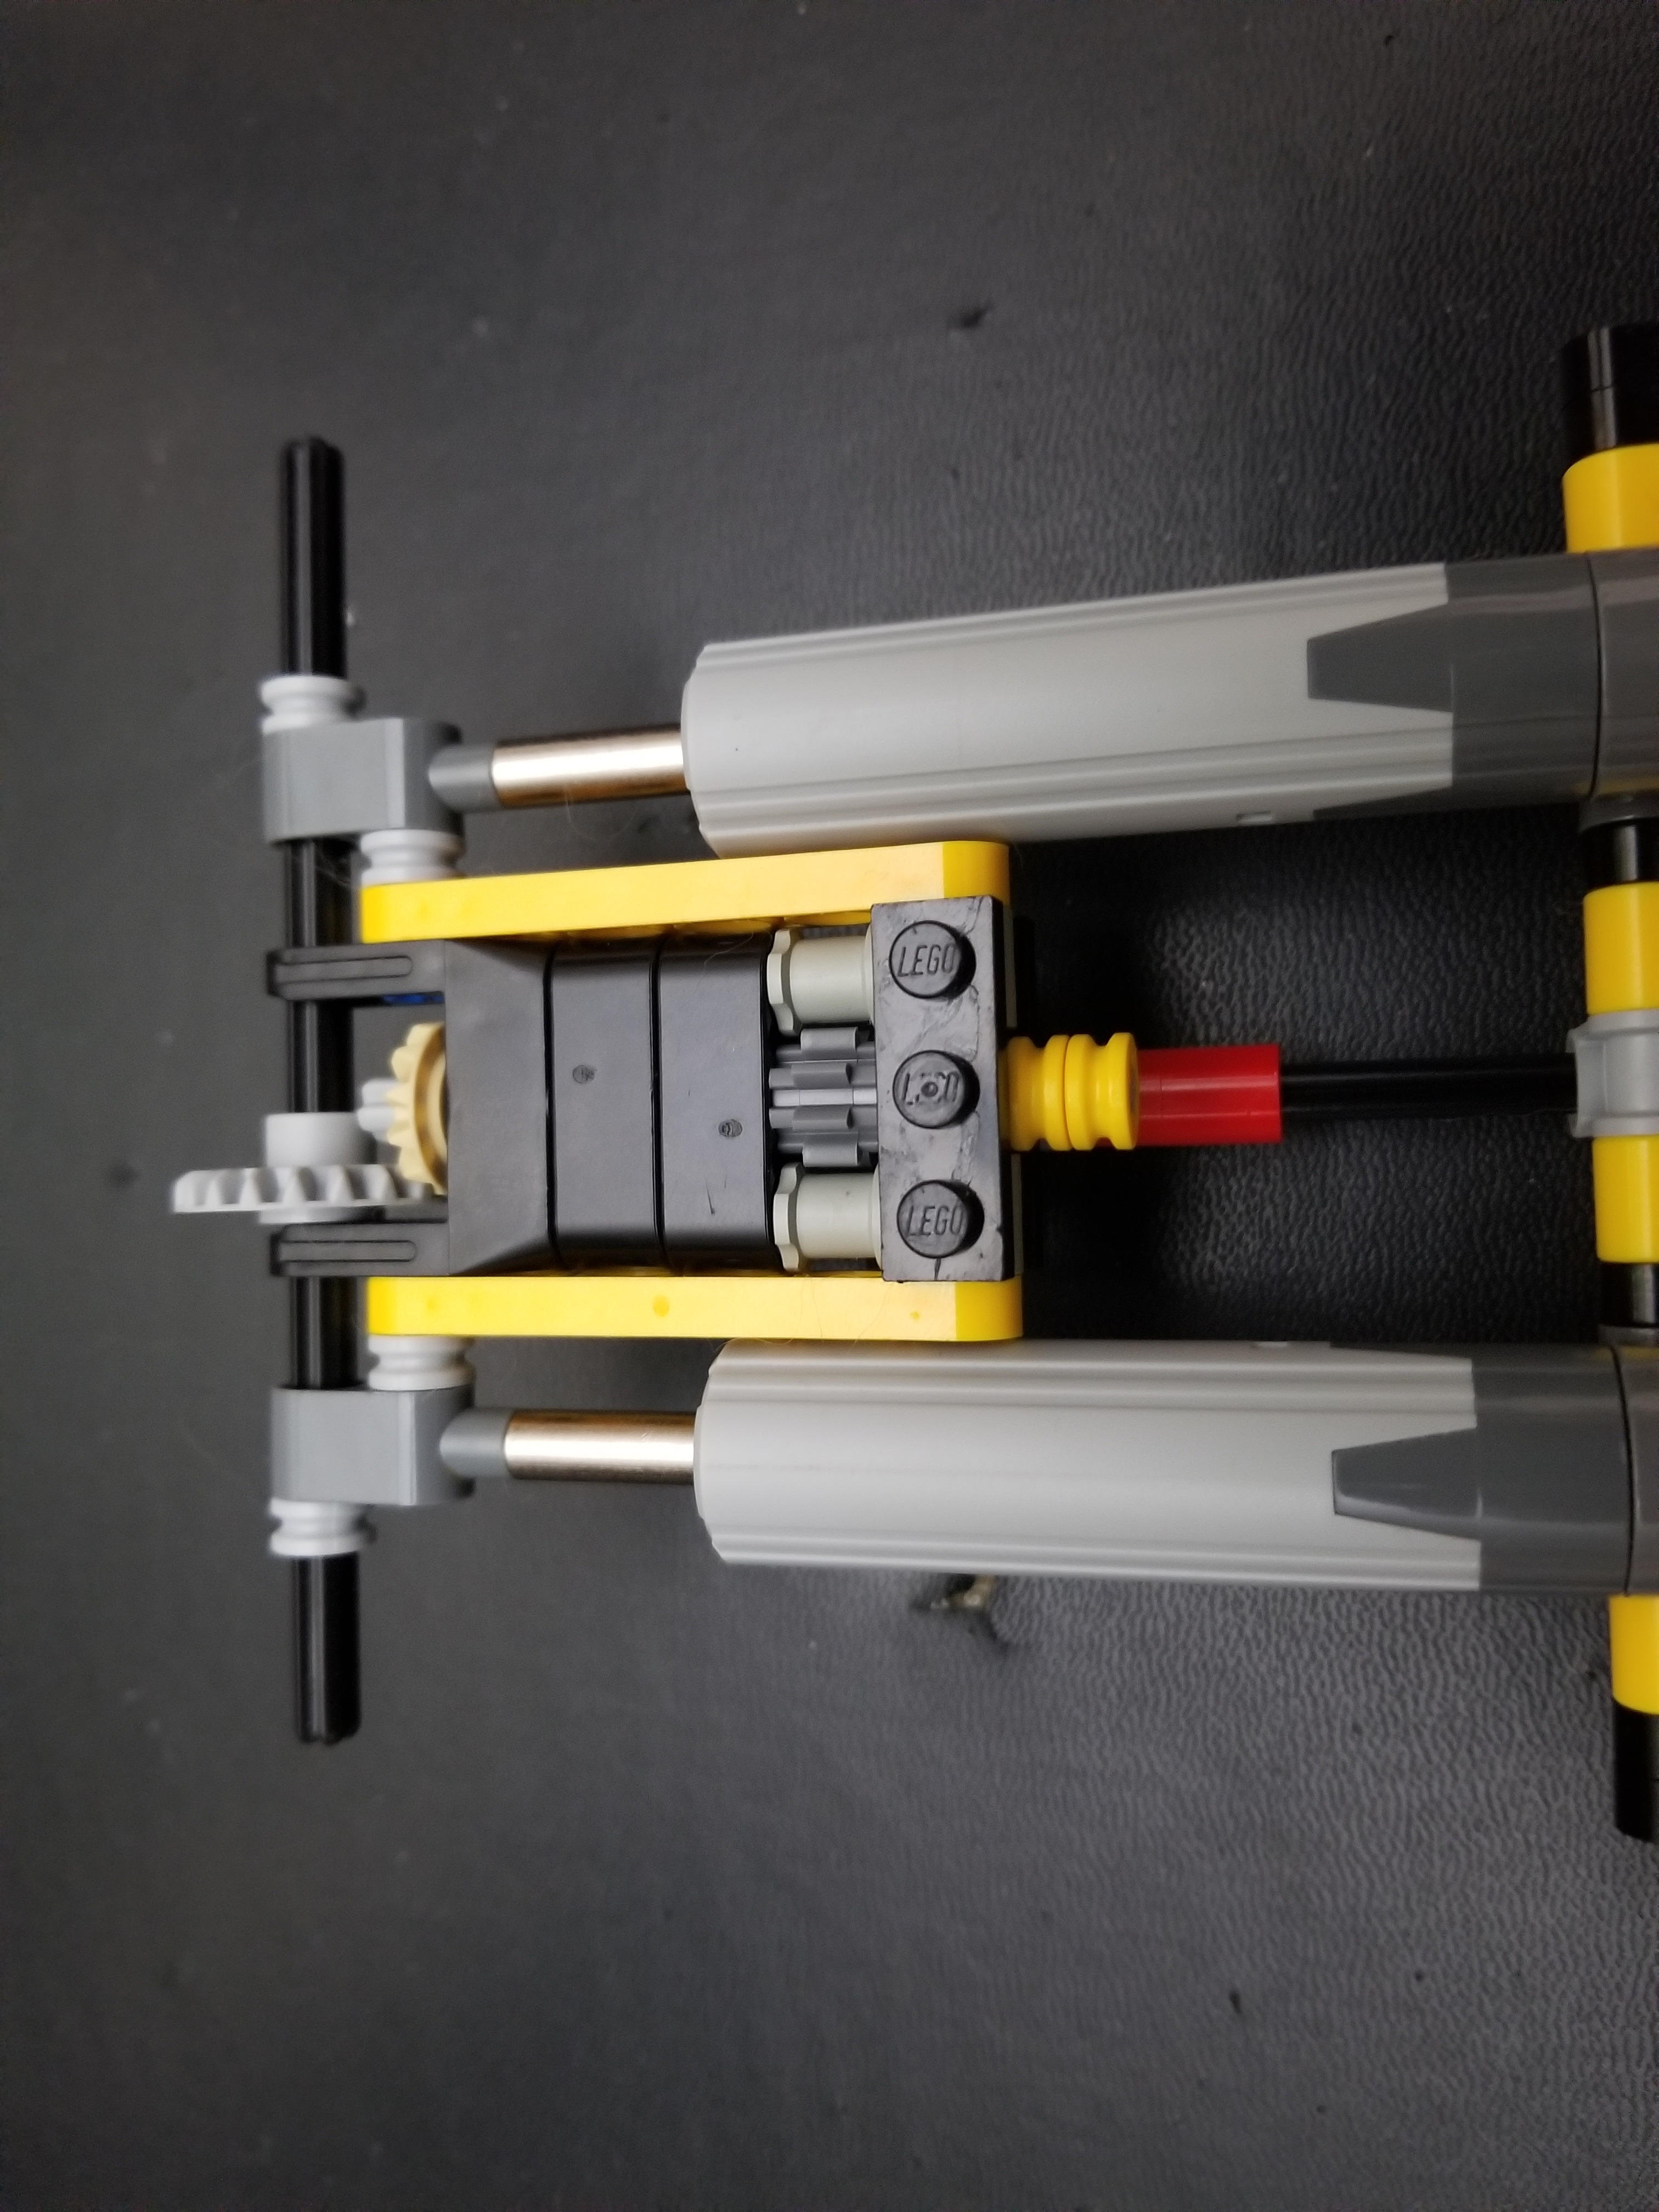 Picture of Lego Technic Back to Back Double Actuator Build